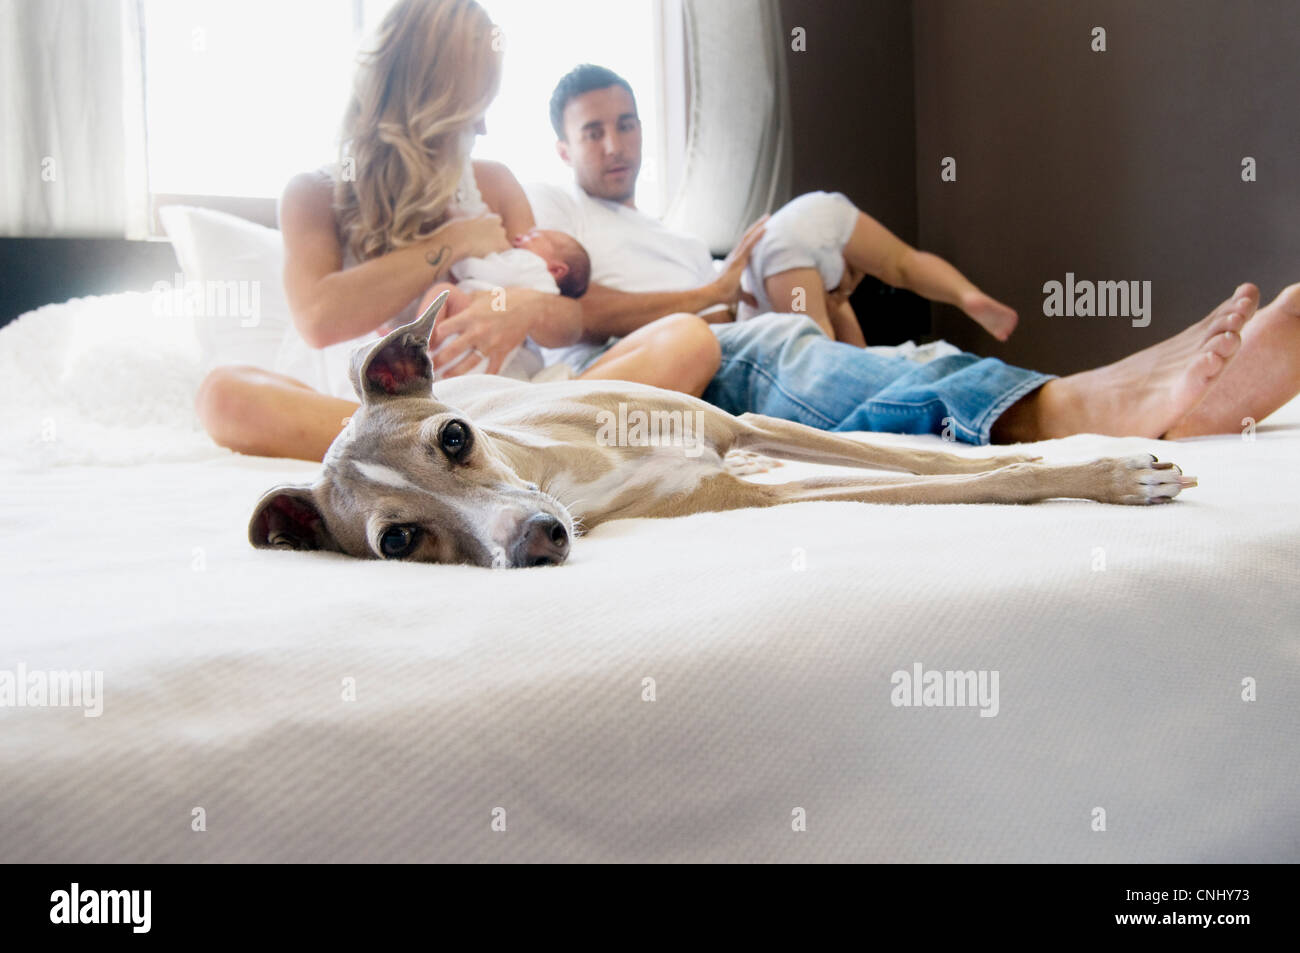 Pet dog and family with couple with babies on bed - Stock Image